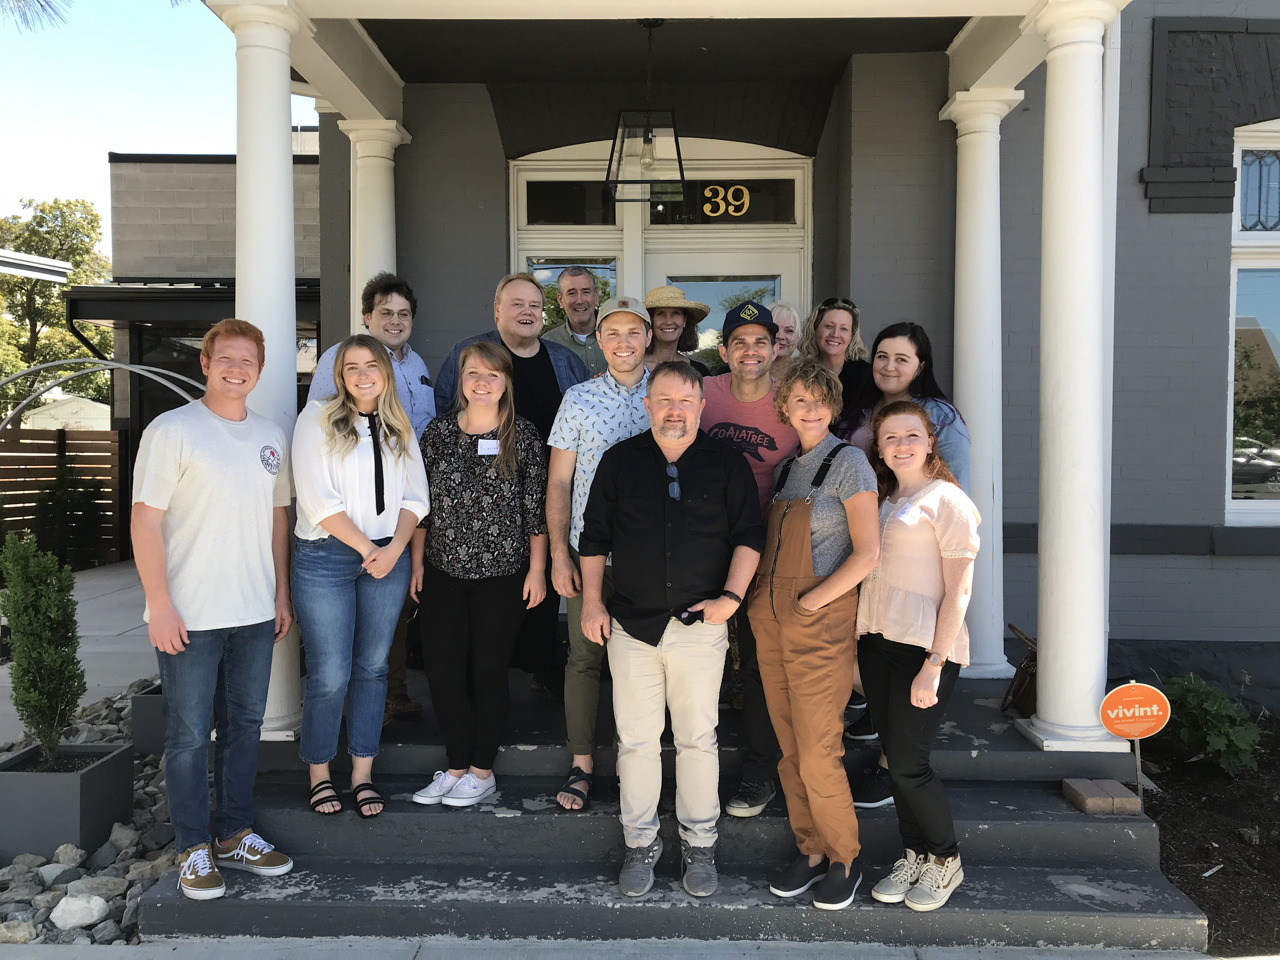 This is most of the crew from the session - not the studio crew but the podcast crew as well as comedian Louie Anderson who was flown in for the recording.